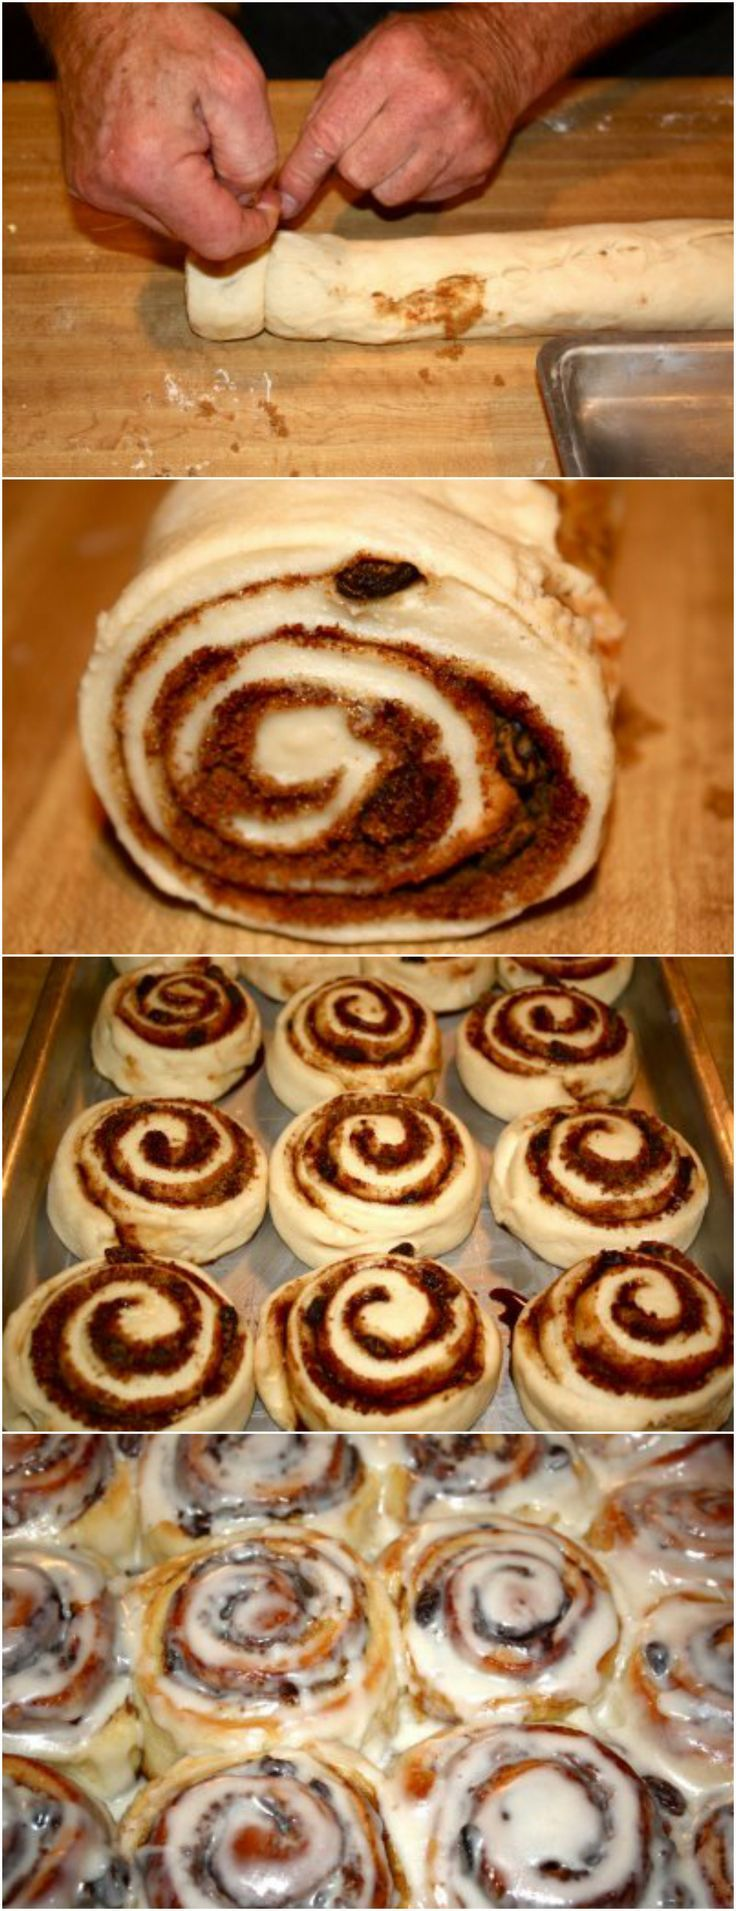 Cinnamon Roll Recipe ~ Says: These are the BEST cinnamon rolls! Everyone always asks for my dad's famous recipe!.